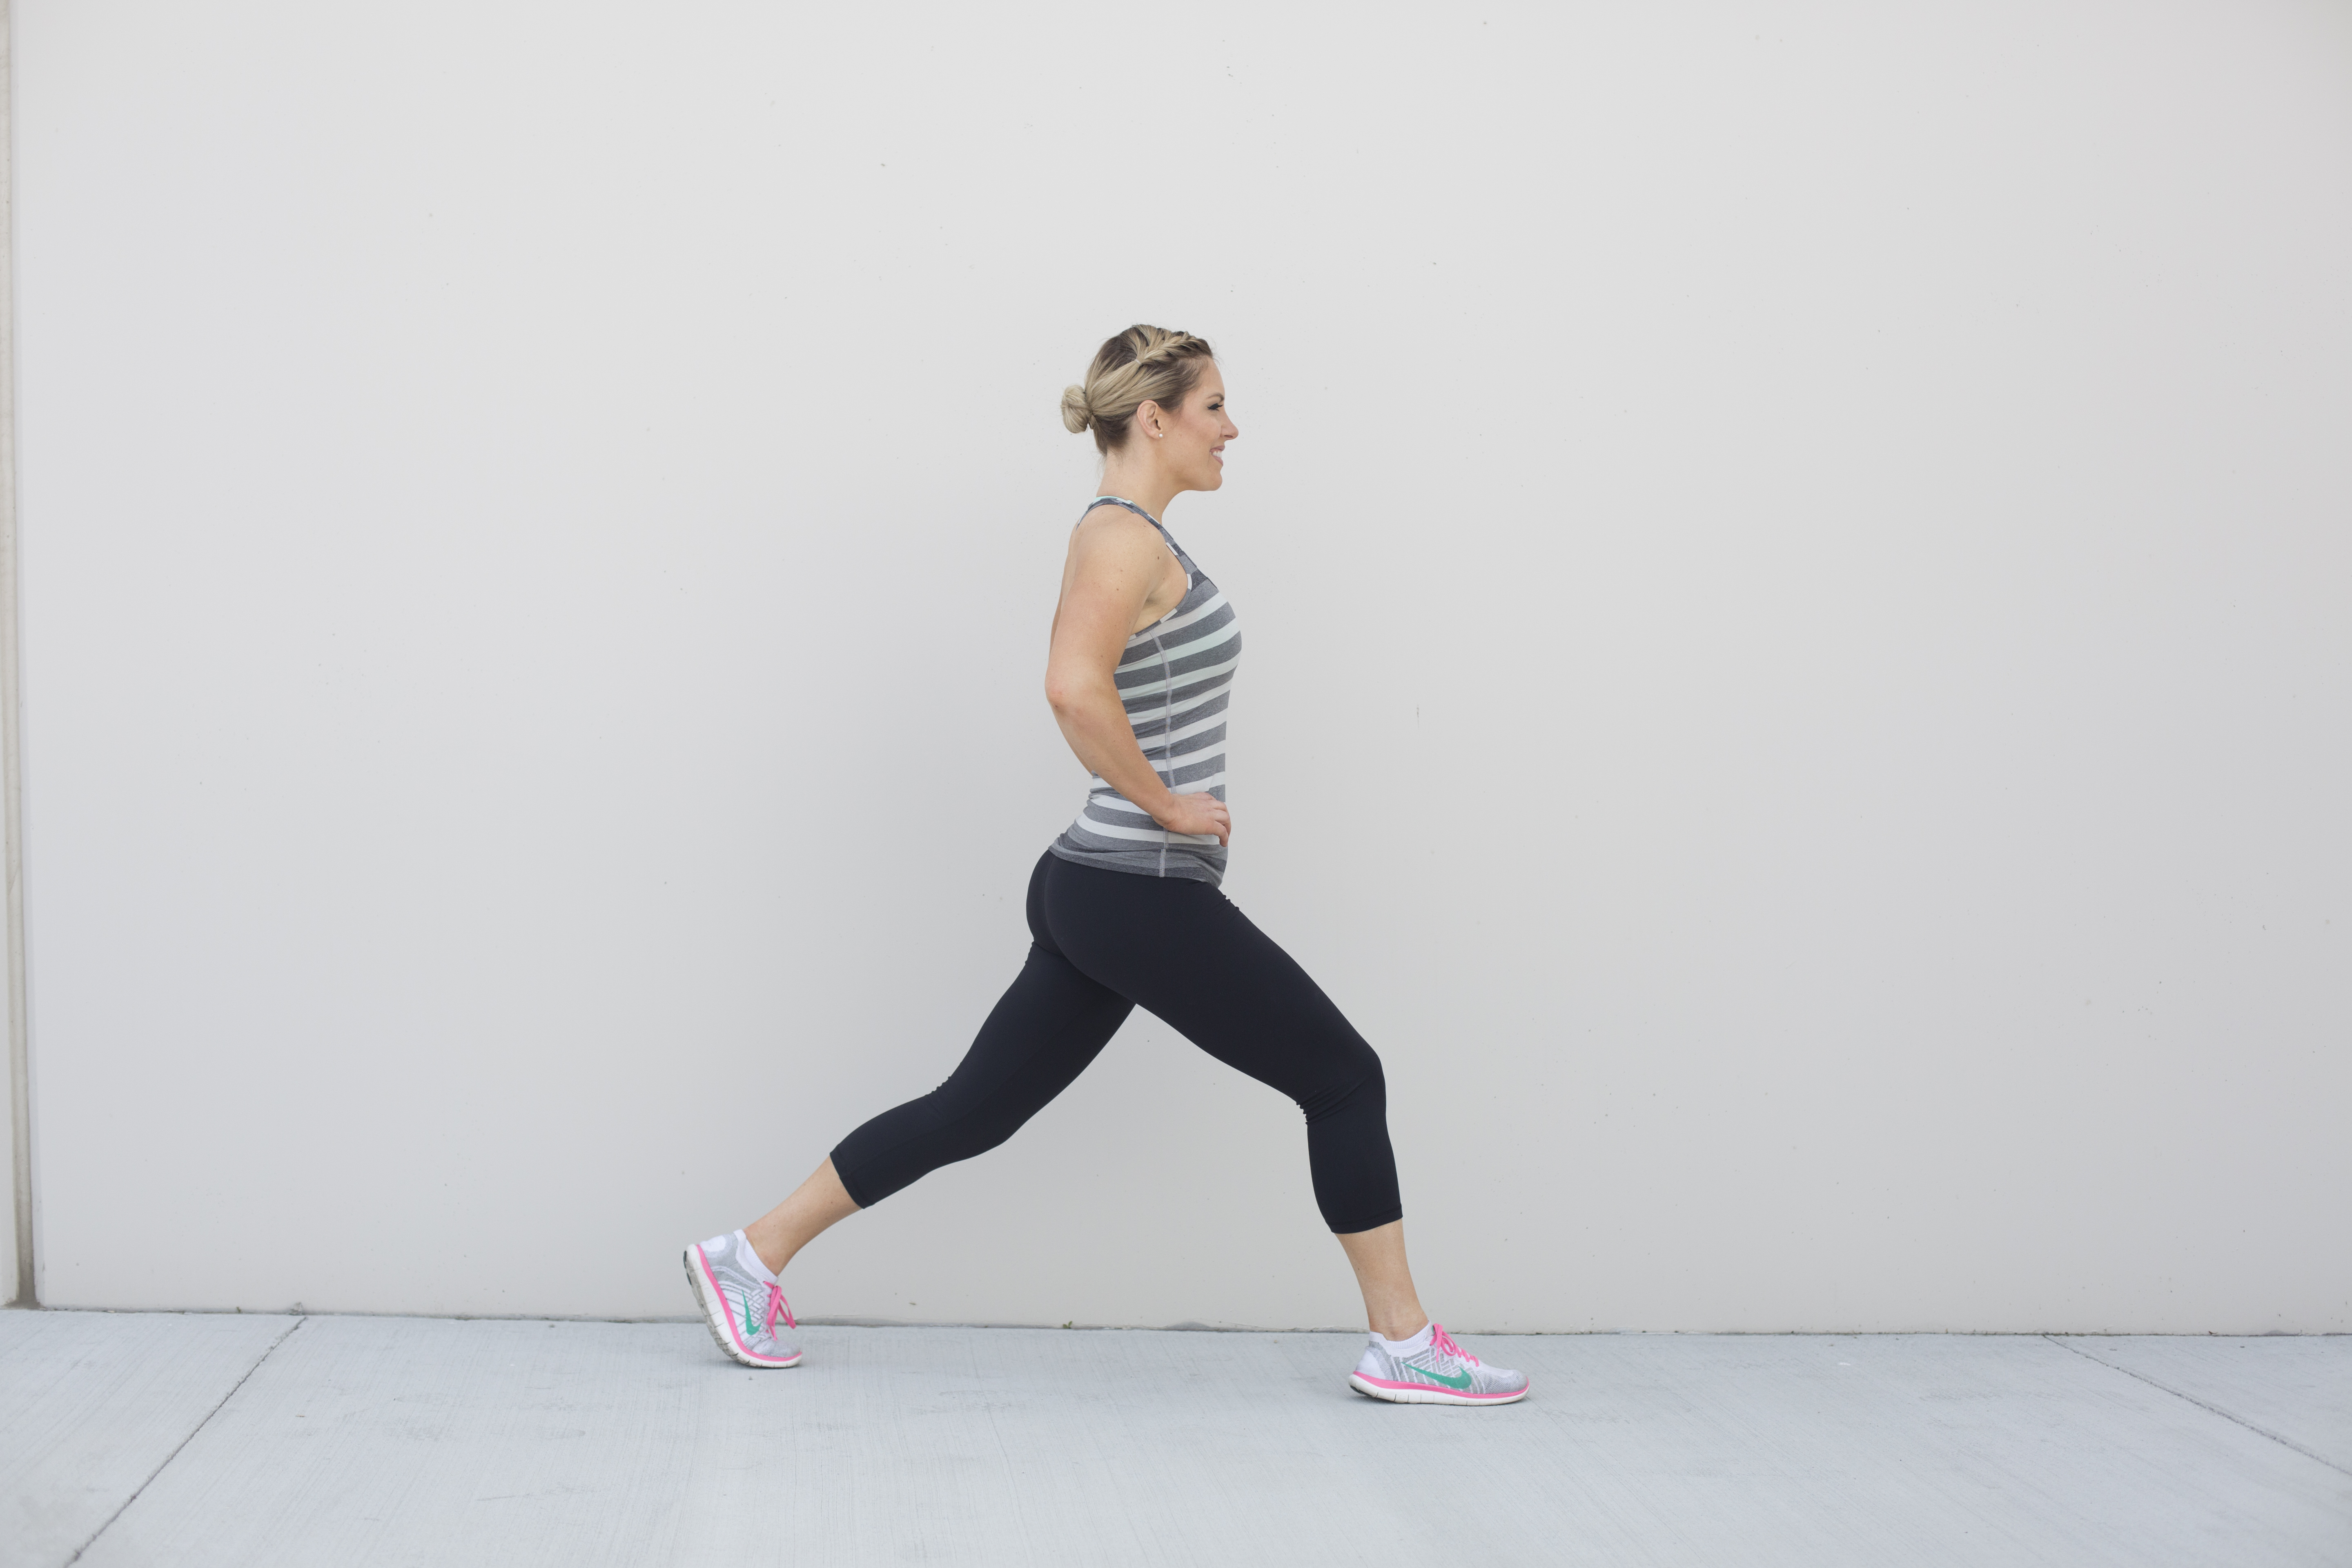 Lunge Exercise Form Step 1